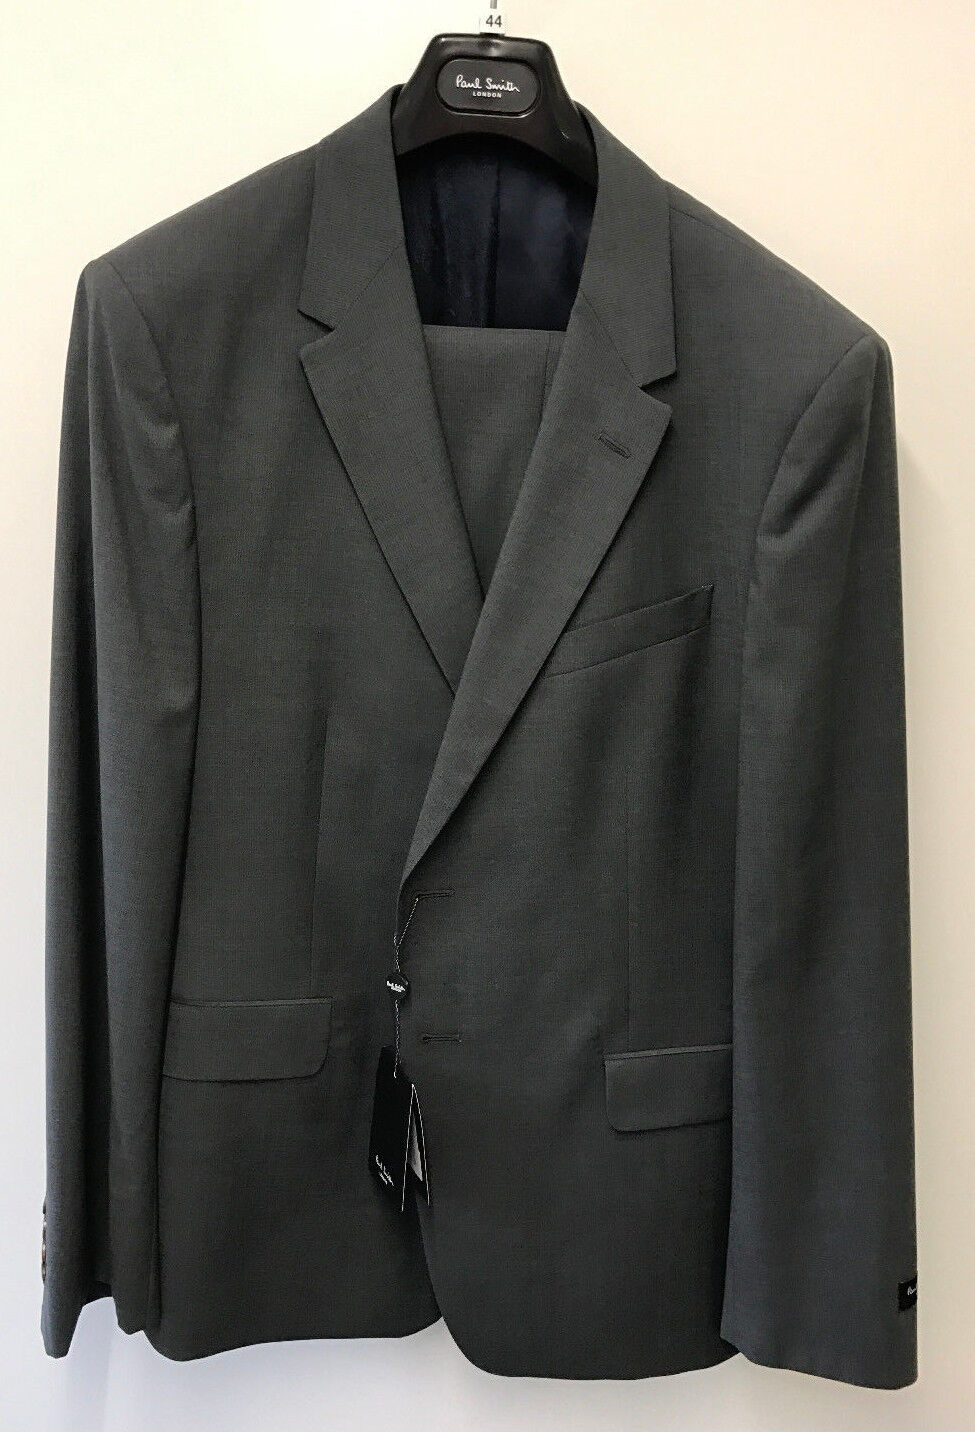 Paul Smith Grau Suit LONDON WILLOUGHBY CLASSIC Fit UK44R Chest 44